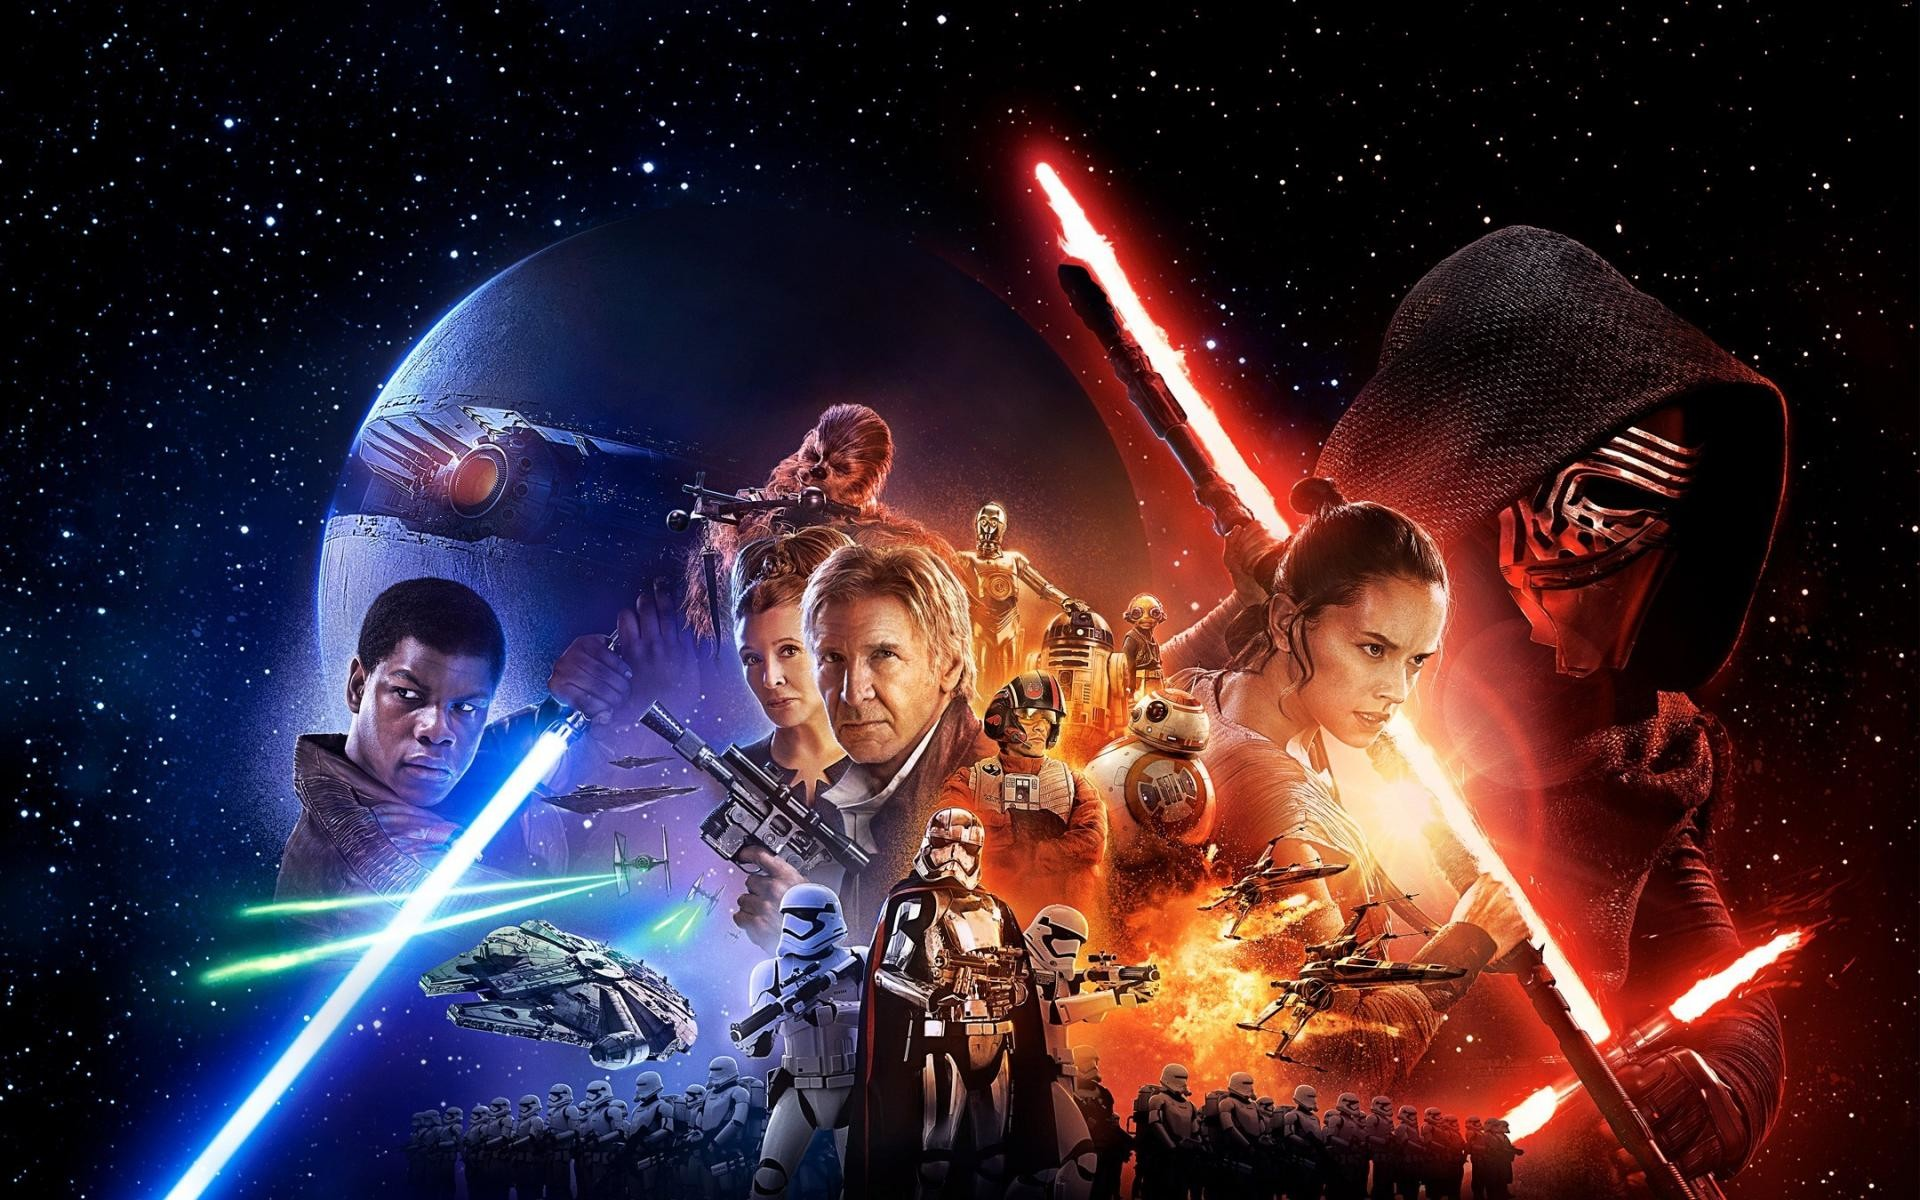 Star Wars The Force Awakens Wallpapers 1920X1080 (80 ...